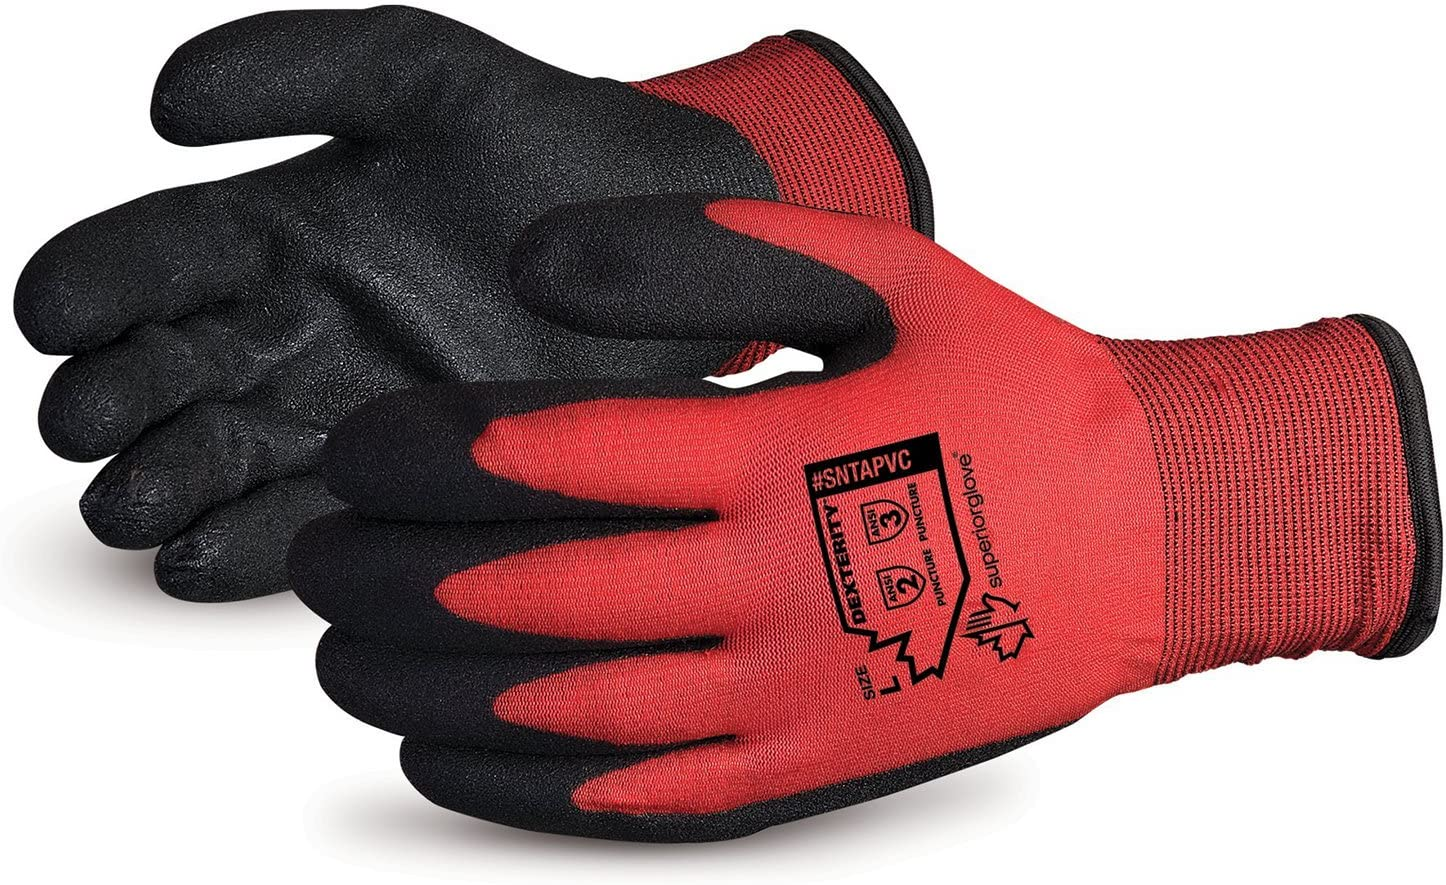 Superior Winter Work Gloves - Fleece-Lined with Black Tight Grip Palms (Cold Temperatures) SNTAPVC – Size X-Large